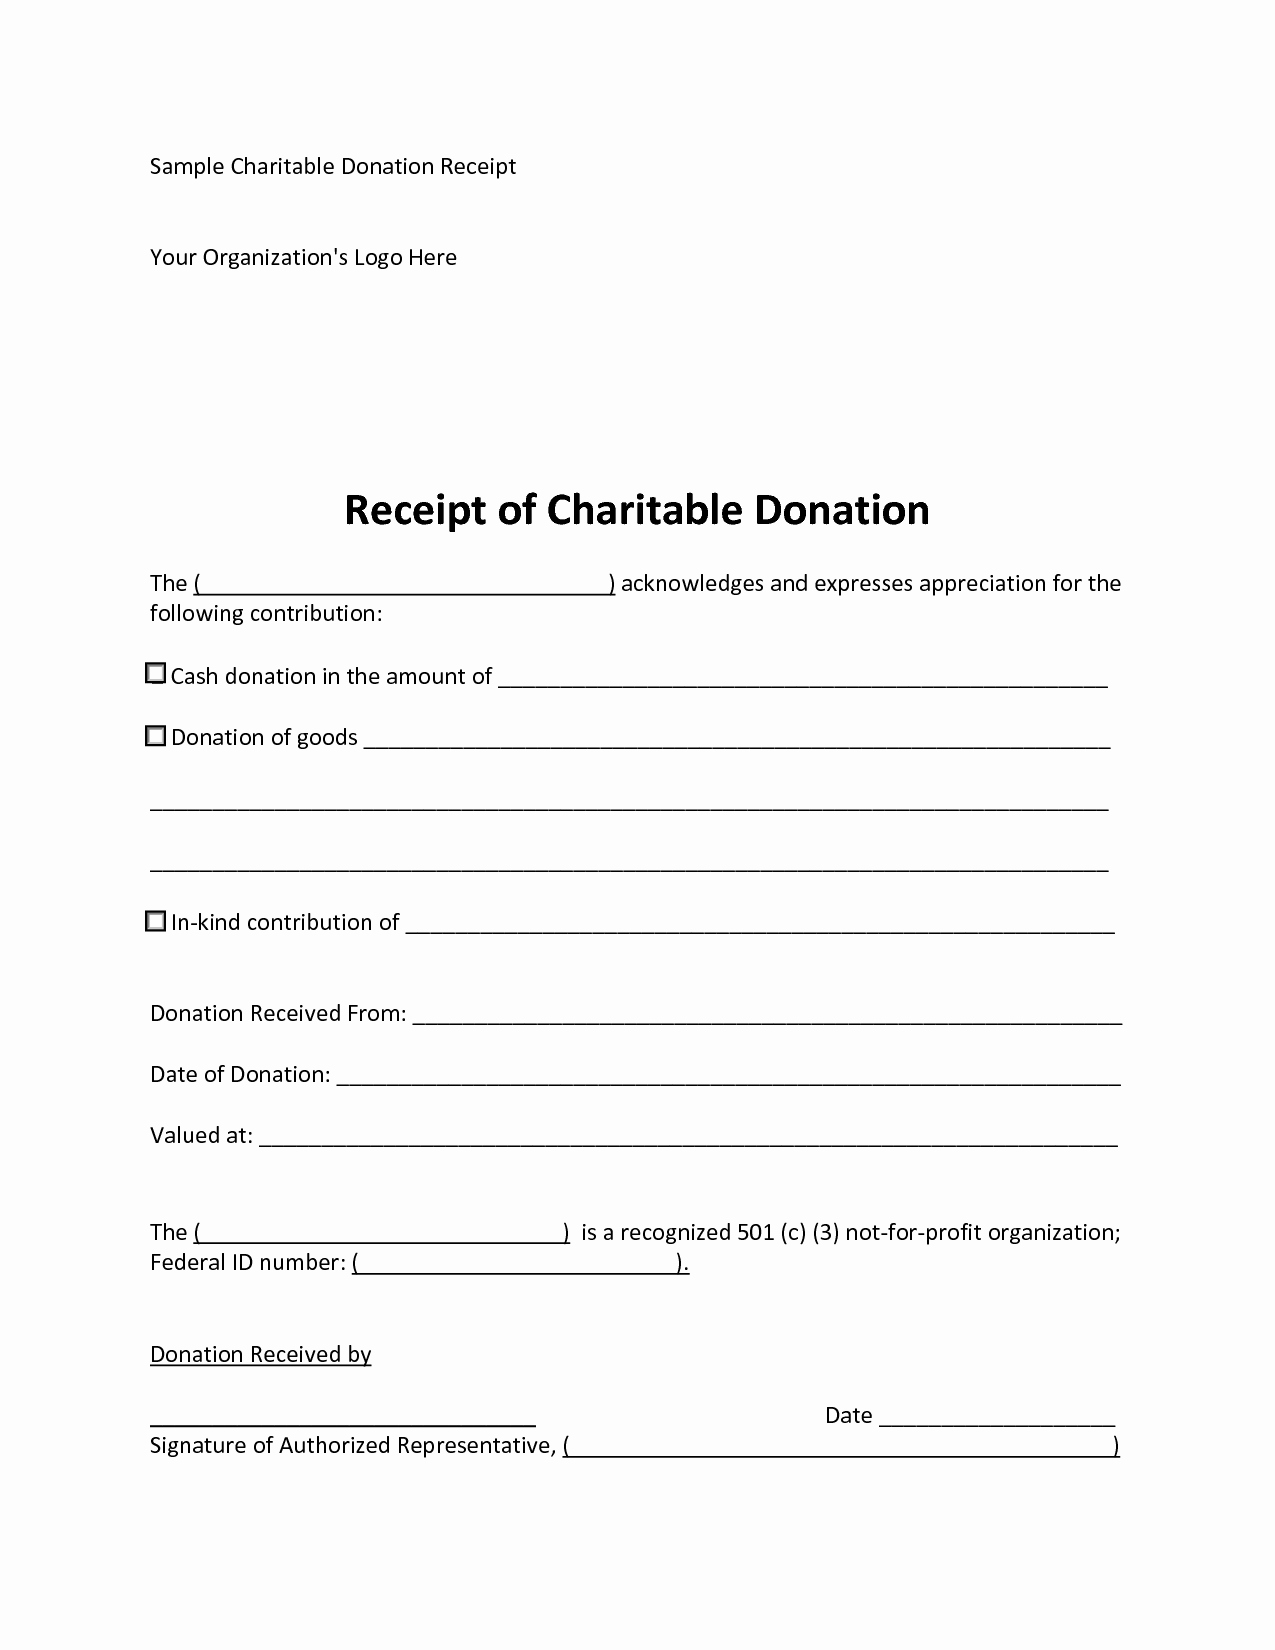 Donation Receipt Template for 501c3 Inspirational 6 Best Of 501c3 Donation Receipt Template Charity